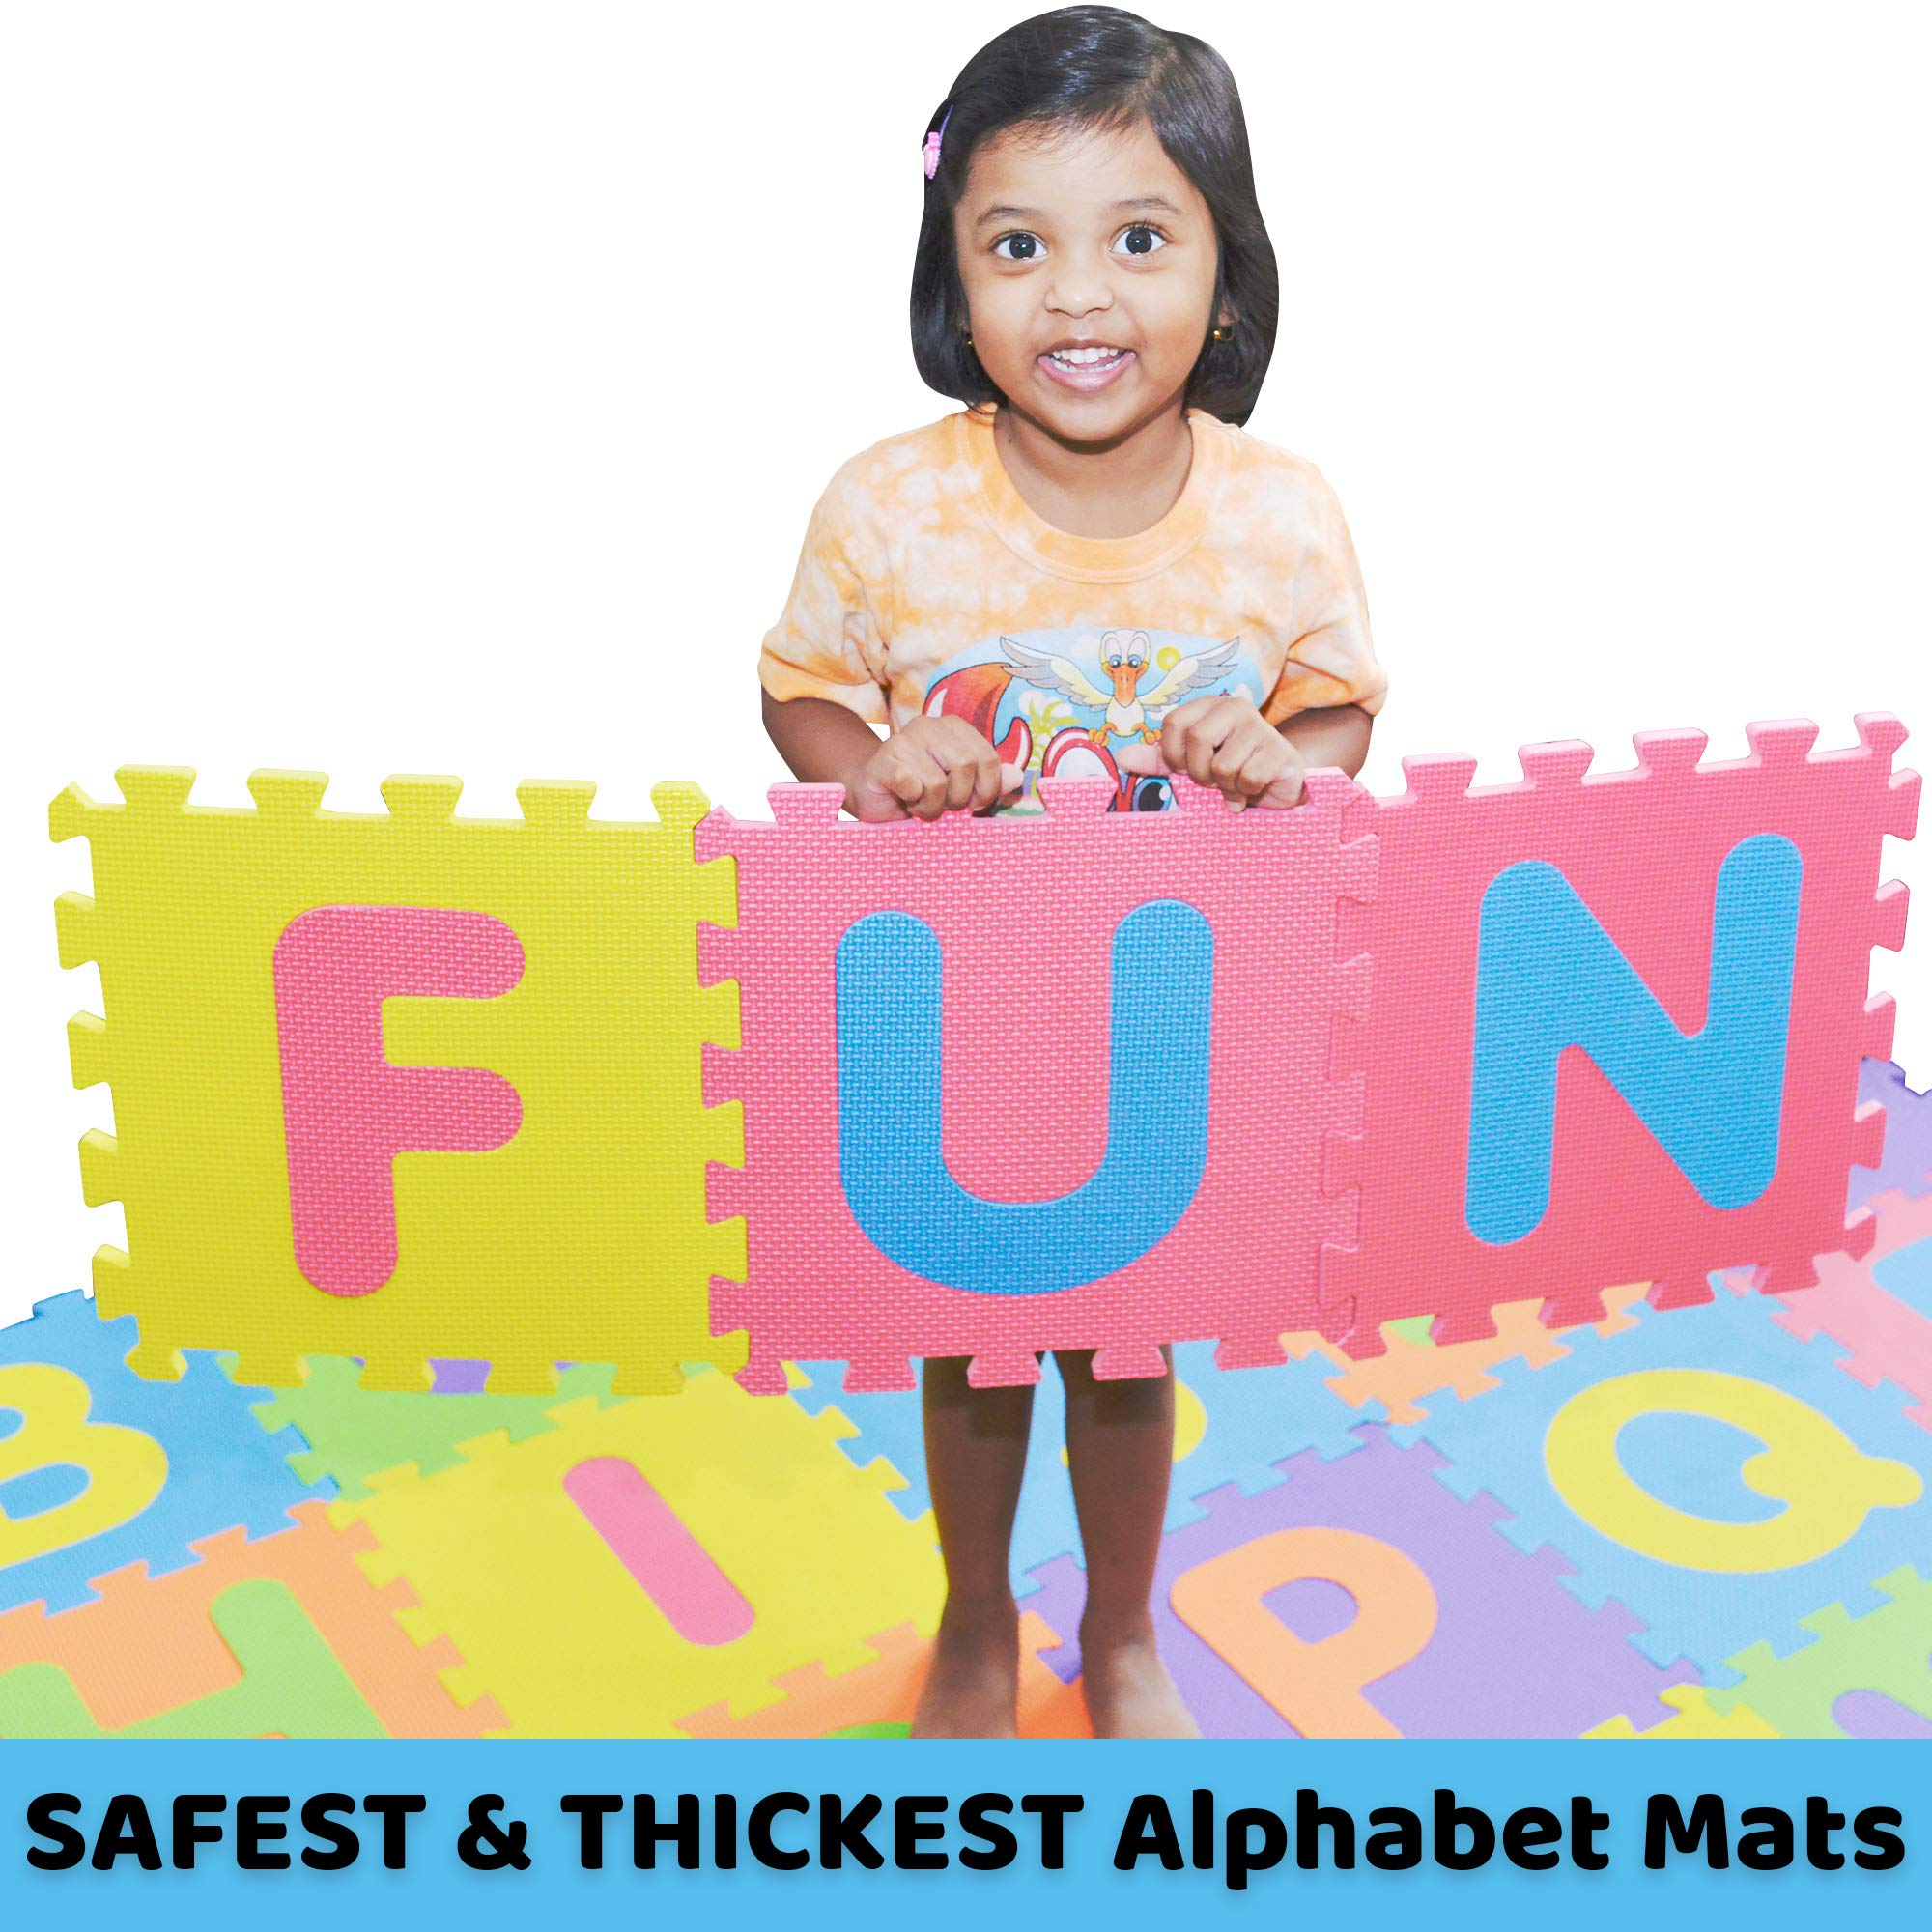 SAFEST Non Toxic Alphabet Puzzle Mat | THICKEST ABC + Numbers 0 to 9 Flooring Mat | Bonus Fun Learning eBook | Reusable Carry Bag | Kids Learn & Play with Interlocking Puzzle Pieces | Eva Foam by pete's choice